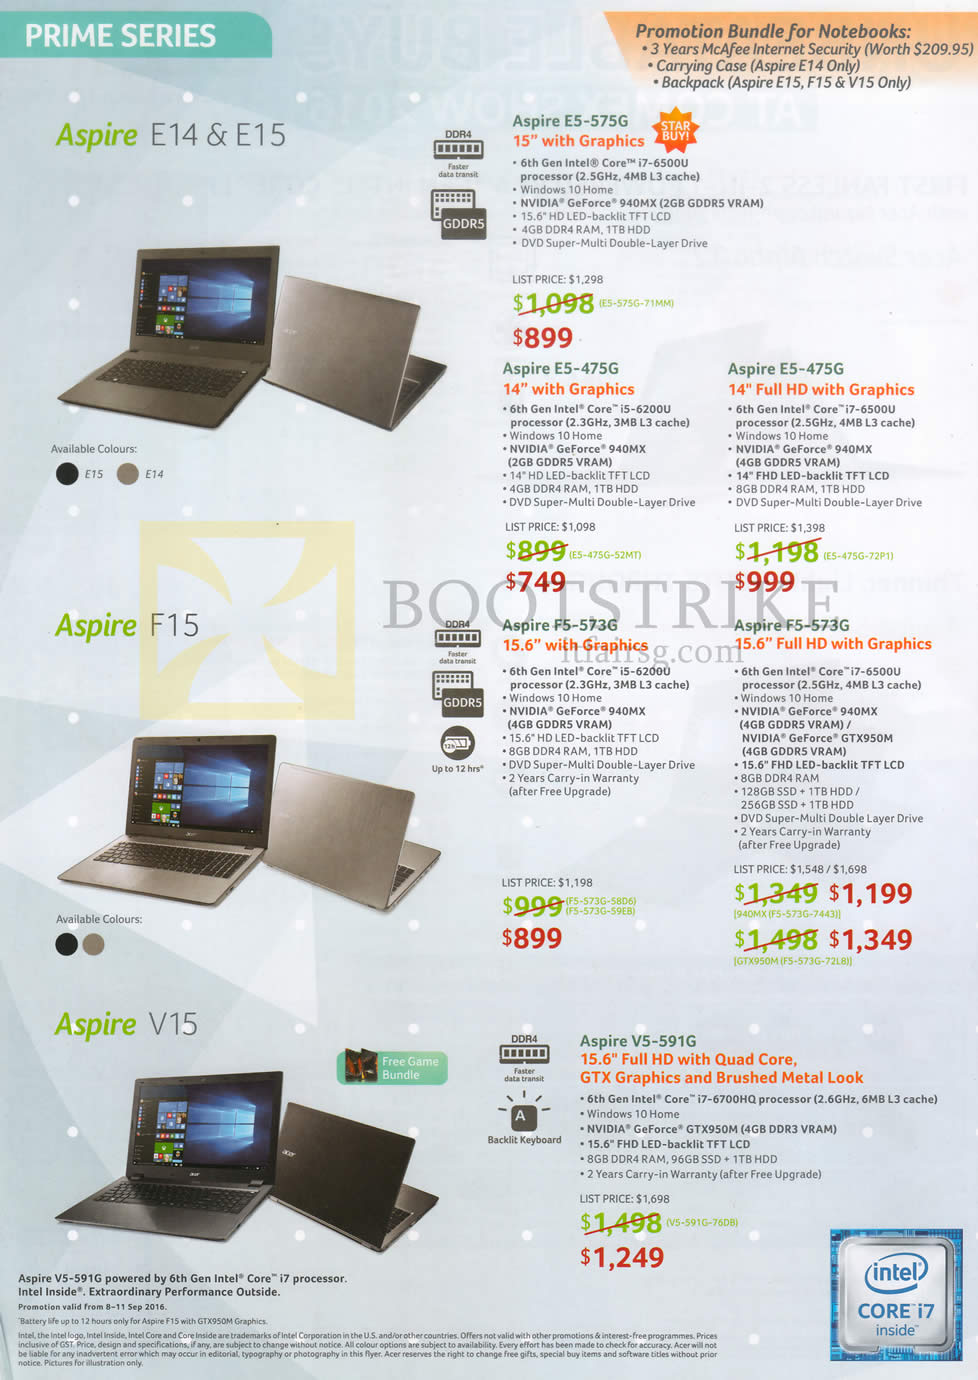 COMEX 2016 price list image brochure of Acer Notebooks Aspire E14 E15 E5-575G, E5-475G, F15 F5-573G, F5-373G, V15 V5-591G